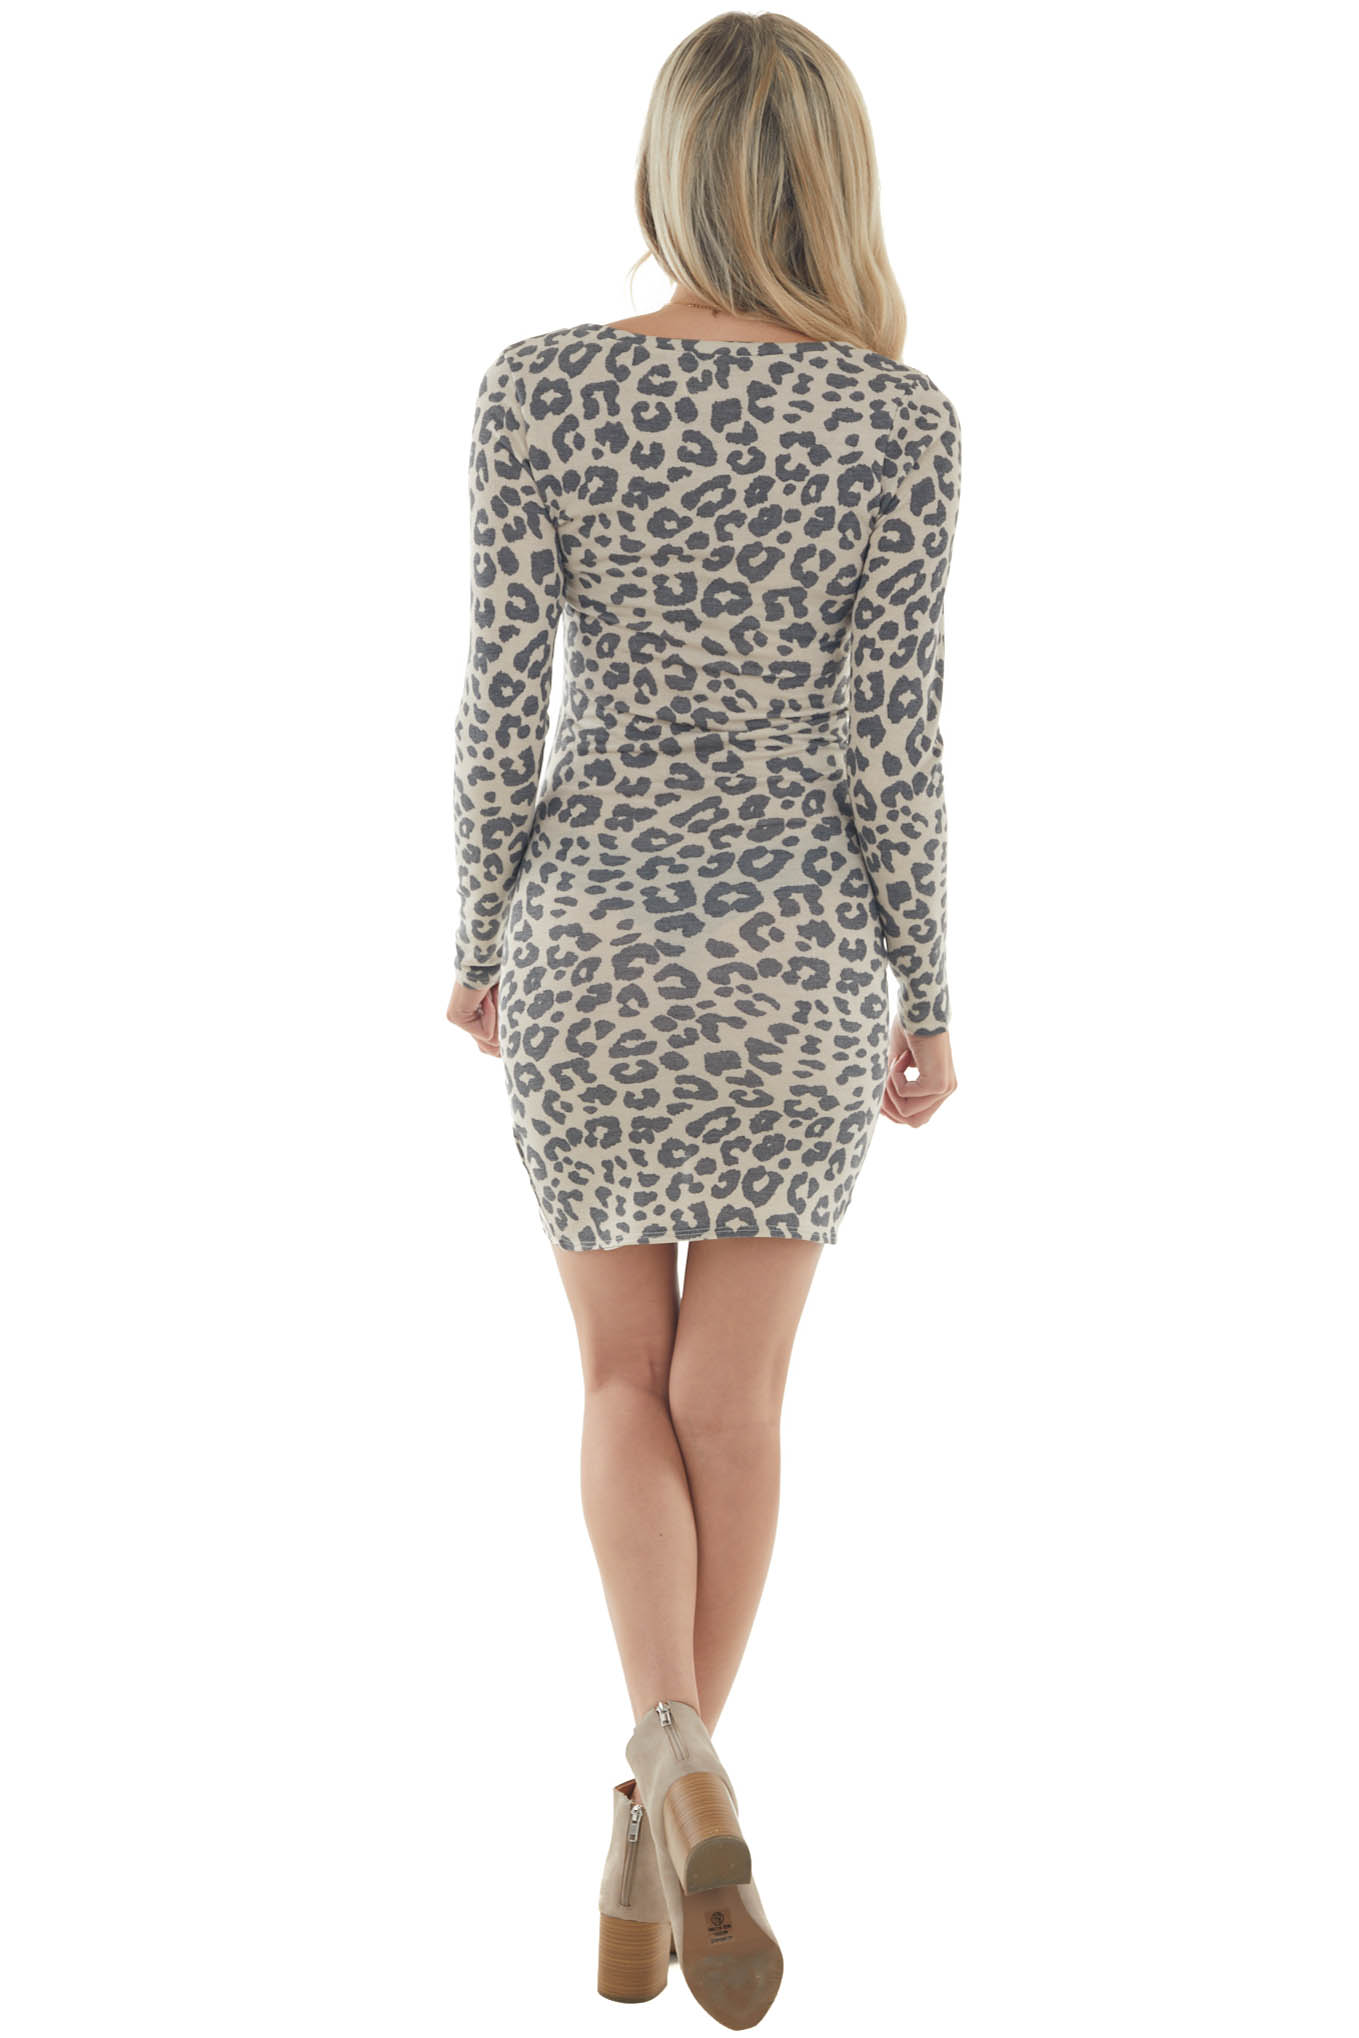 Beige Leopard Long Sleeve Bodycon Ruched Dress